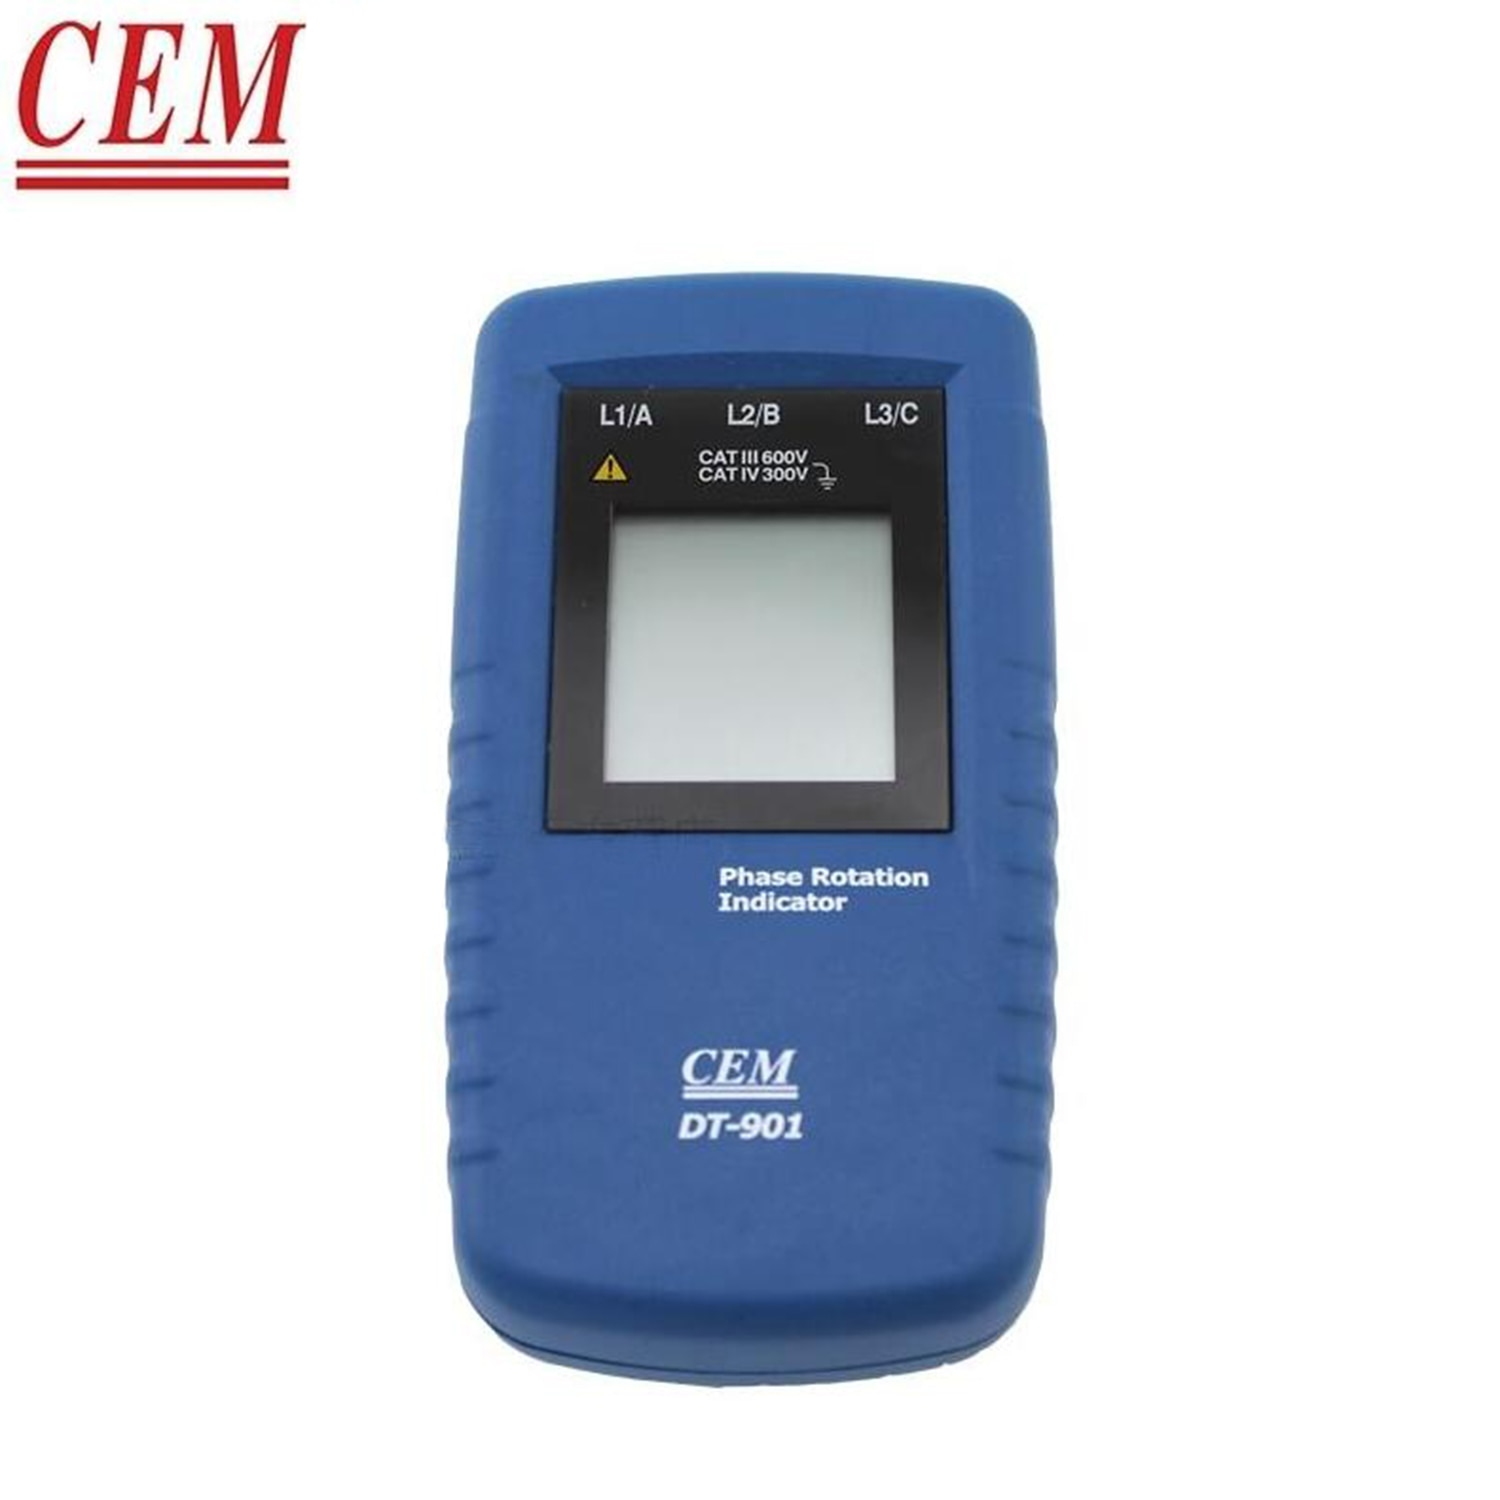 CEM DT-901 Phase Rotation Indicator Three-Phase Electric Alternating Current Phase Detector Phase Sequence Steering Indicator.